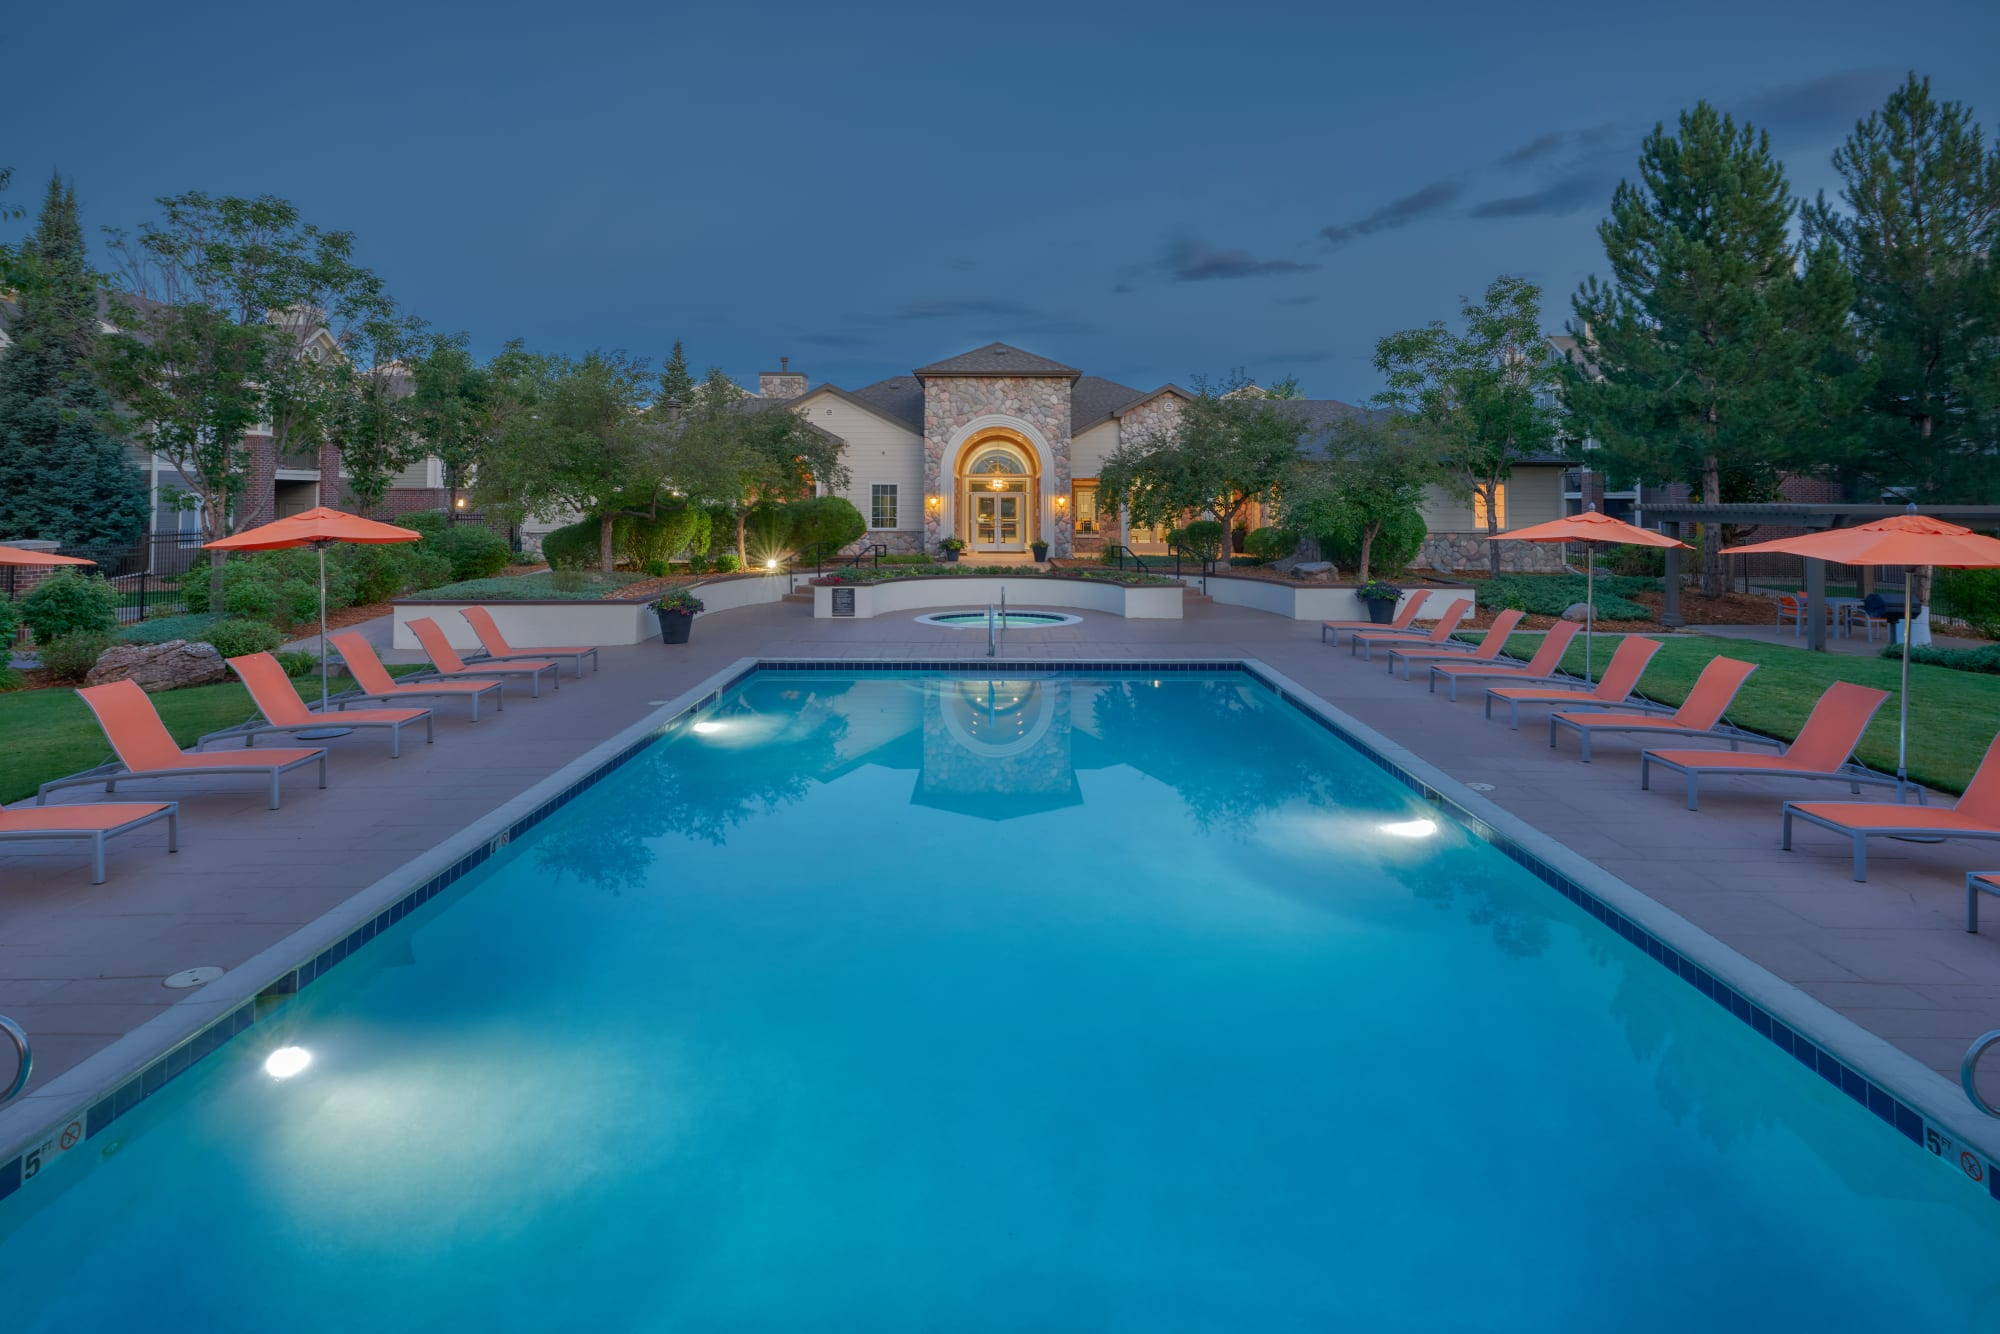 Pool area with lounge chairs at dusk at Legend Oaks Apartments in Aurora, Colorado